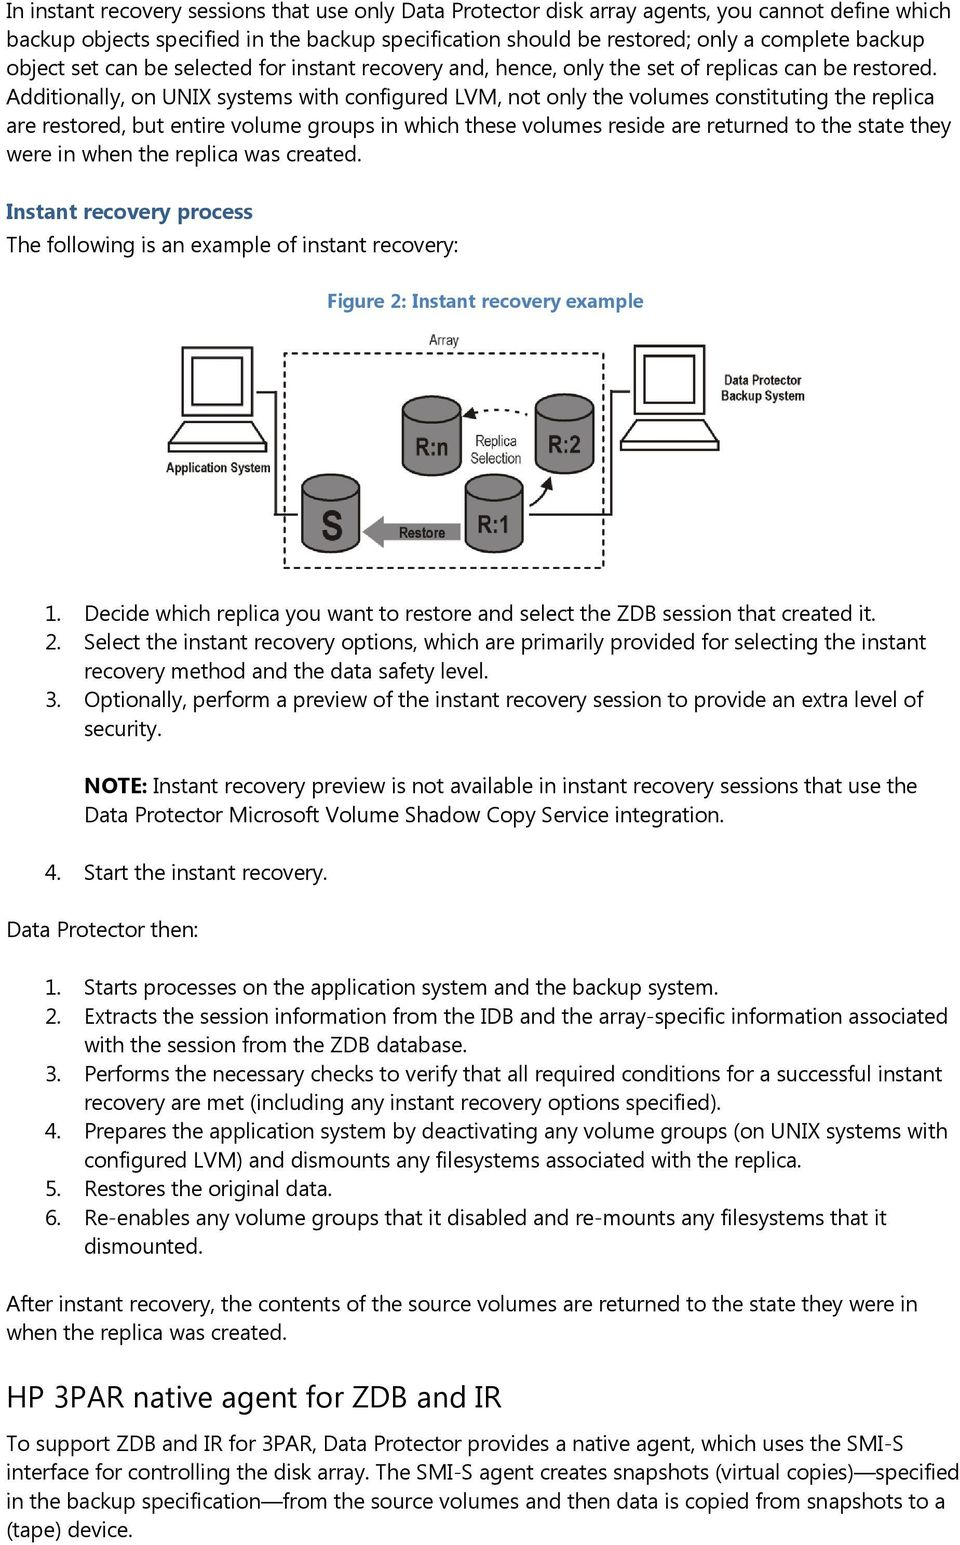 HP Data Protector 8 1 integration with HP 3PAR Storage System - PDF